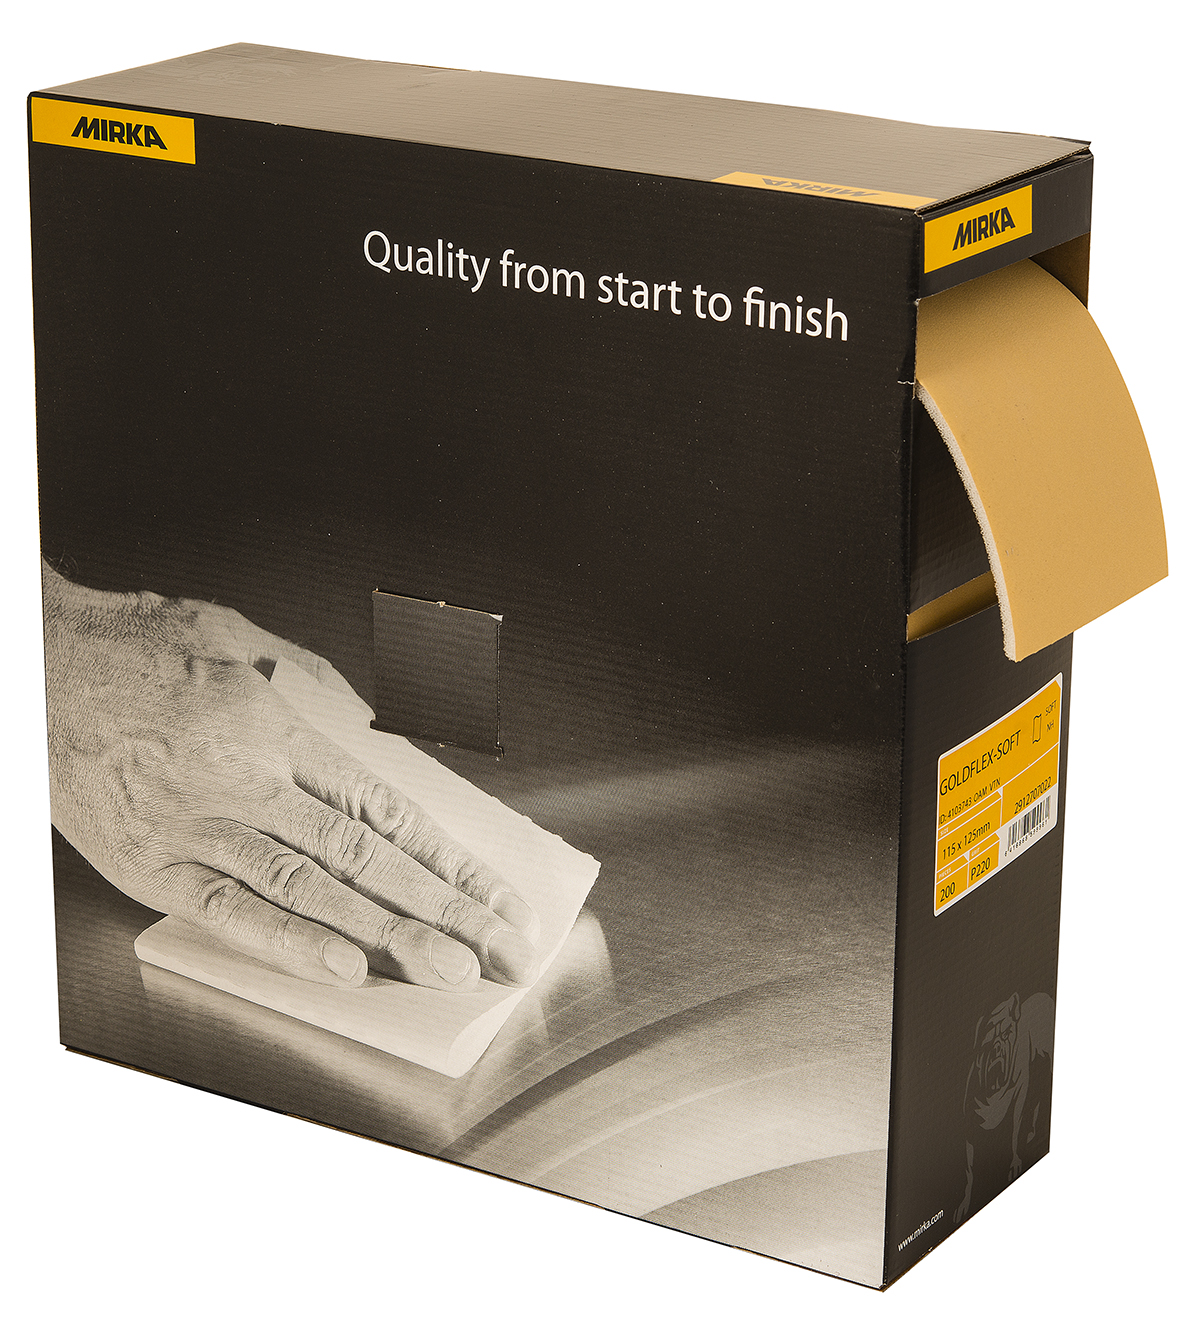 GoldFlex Soft Pad - 4.5 X 5 320 Grit - 200 Pads Auto Dispense Box